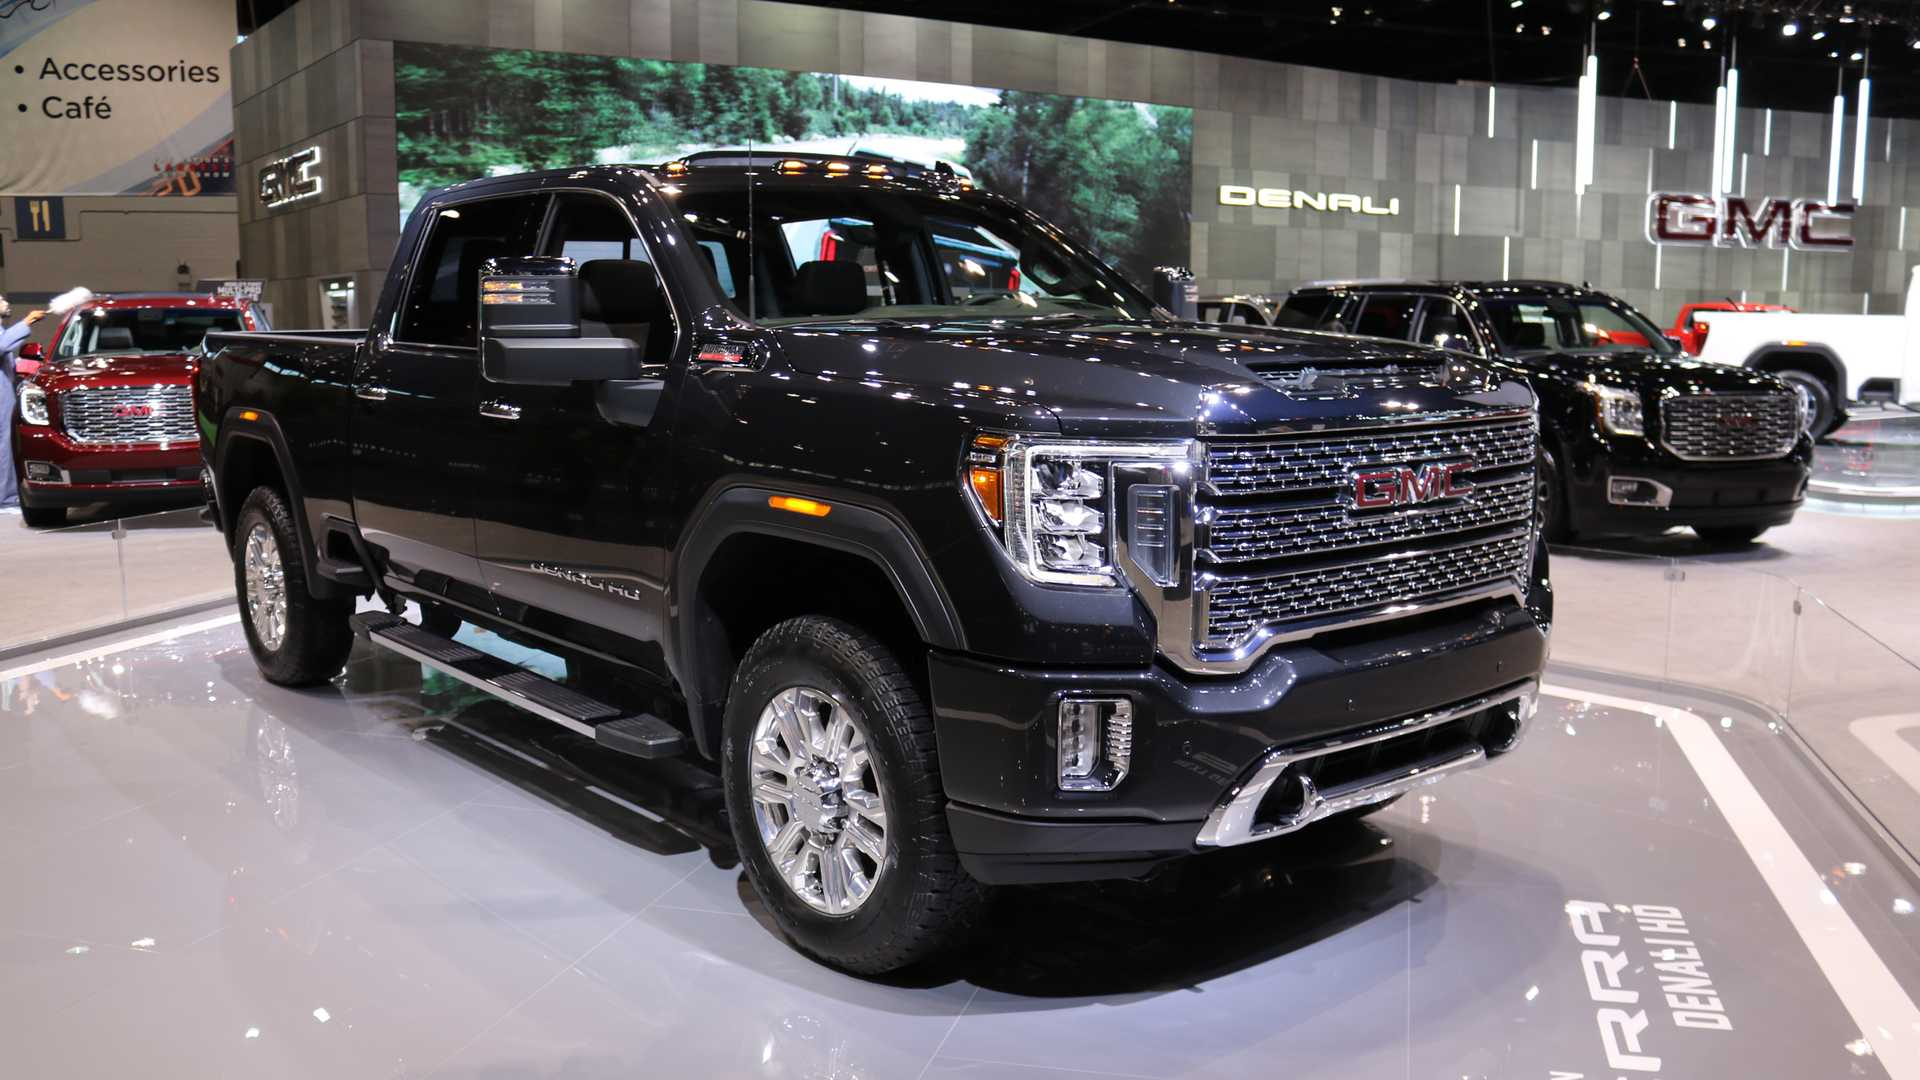 89 The Best 2020 GMC Sierra 2500Hd Gas Engine Rumors